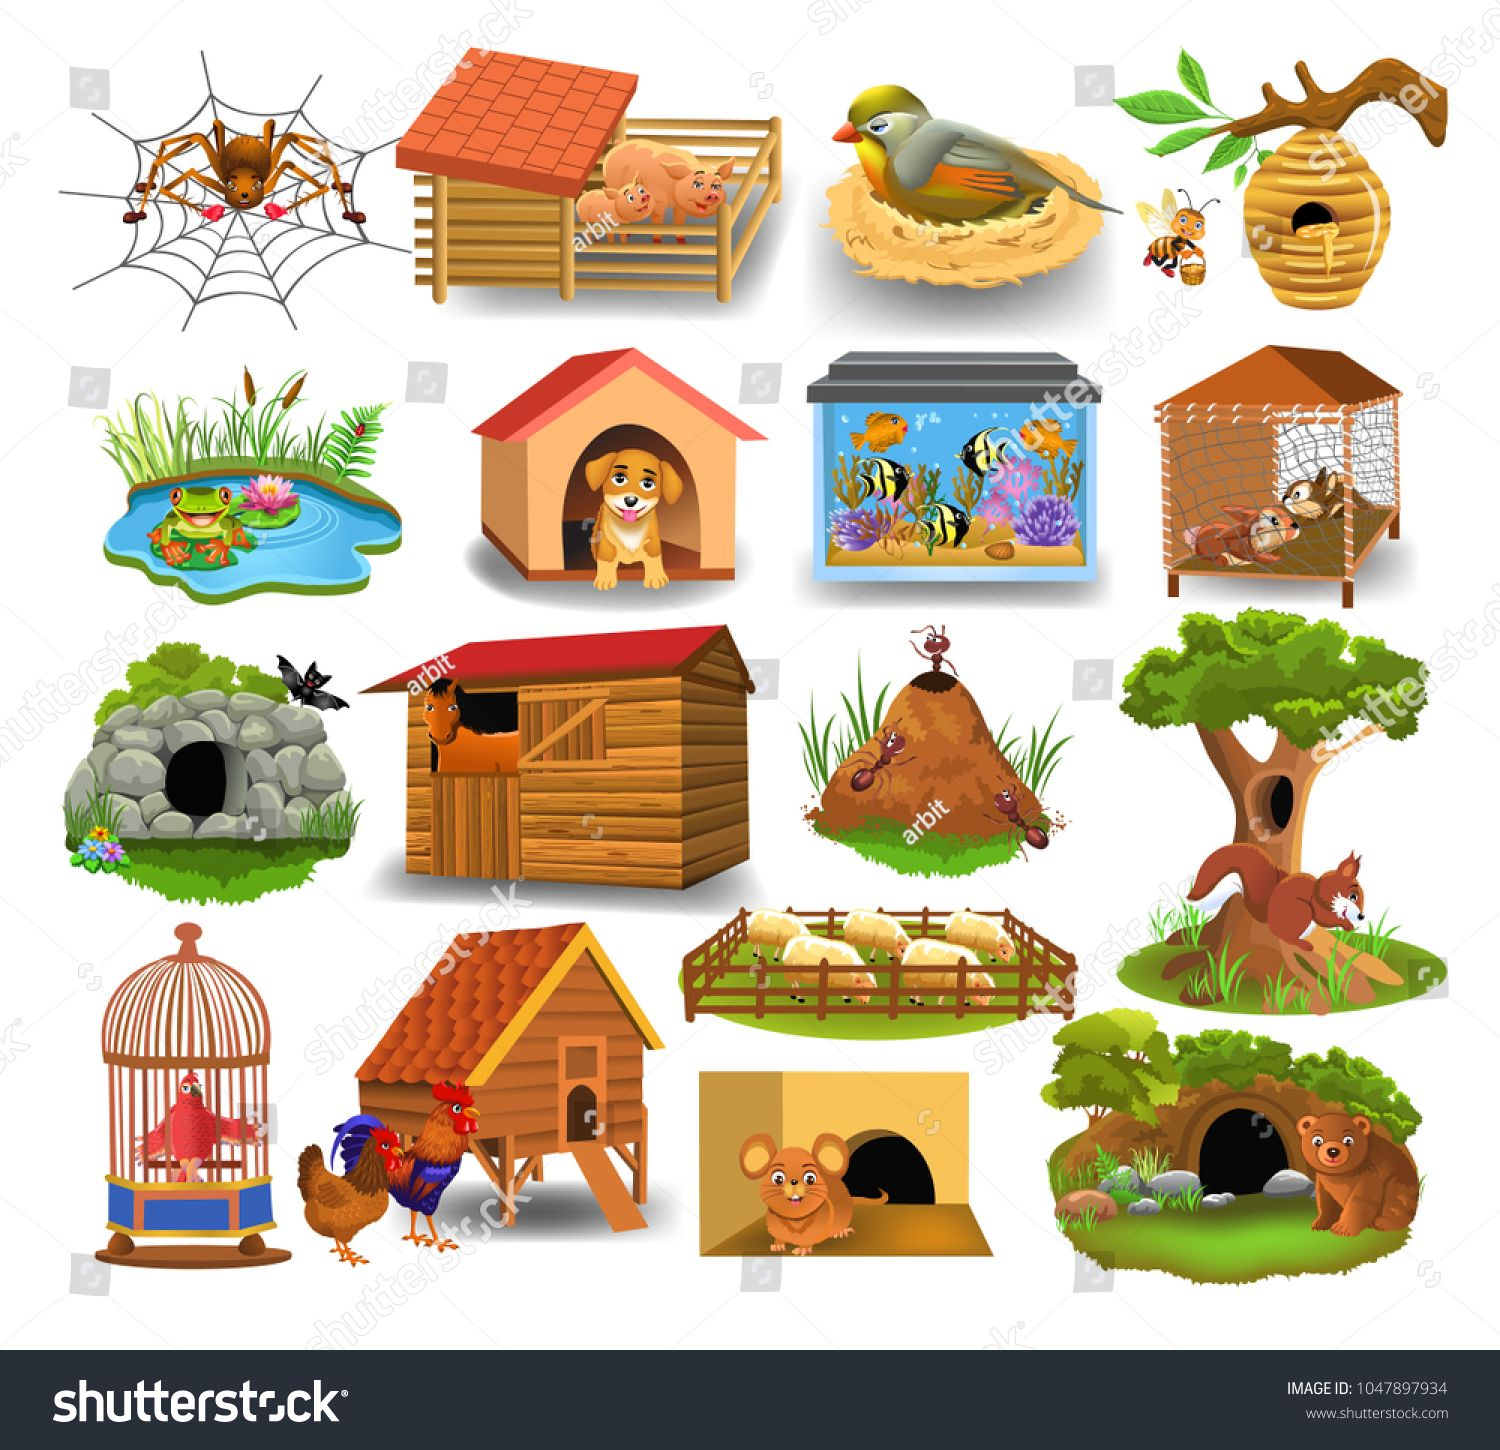 Animal Homes Isolated On A White Backgroundhomes Animal Isolated Background Animals Animal House White Background